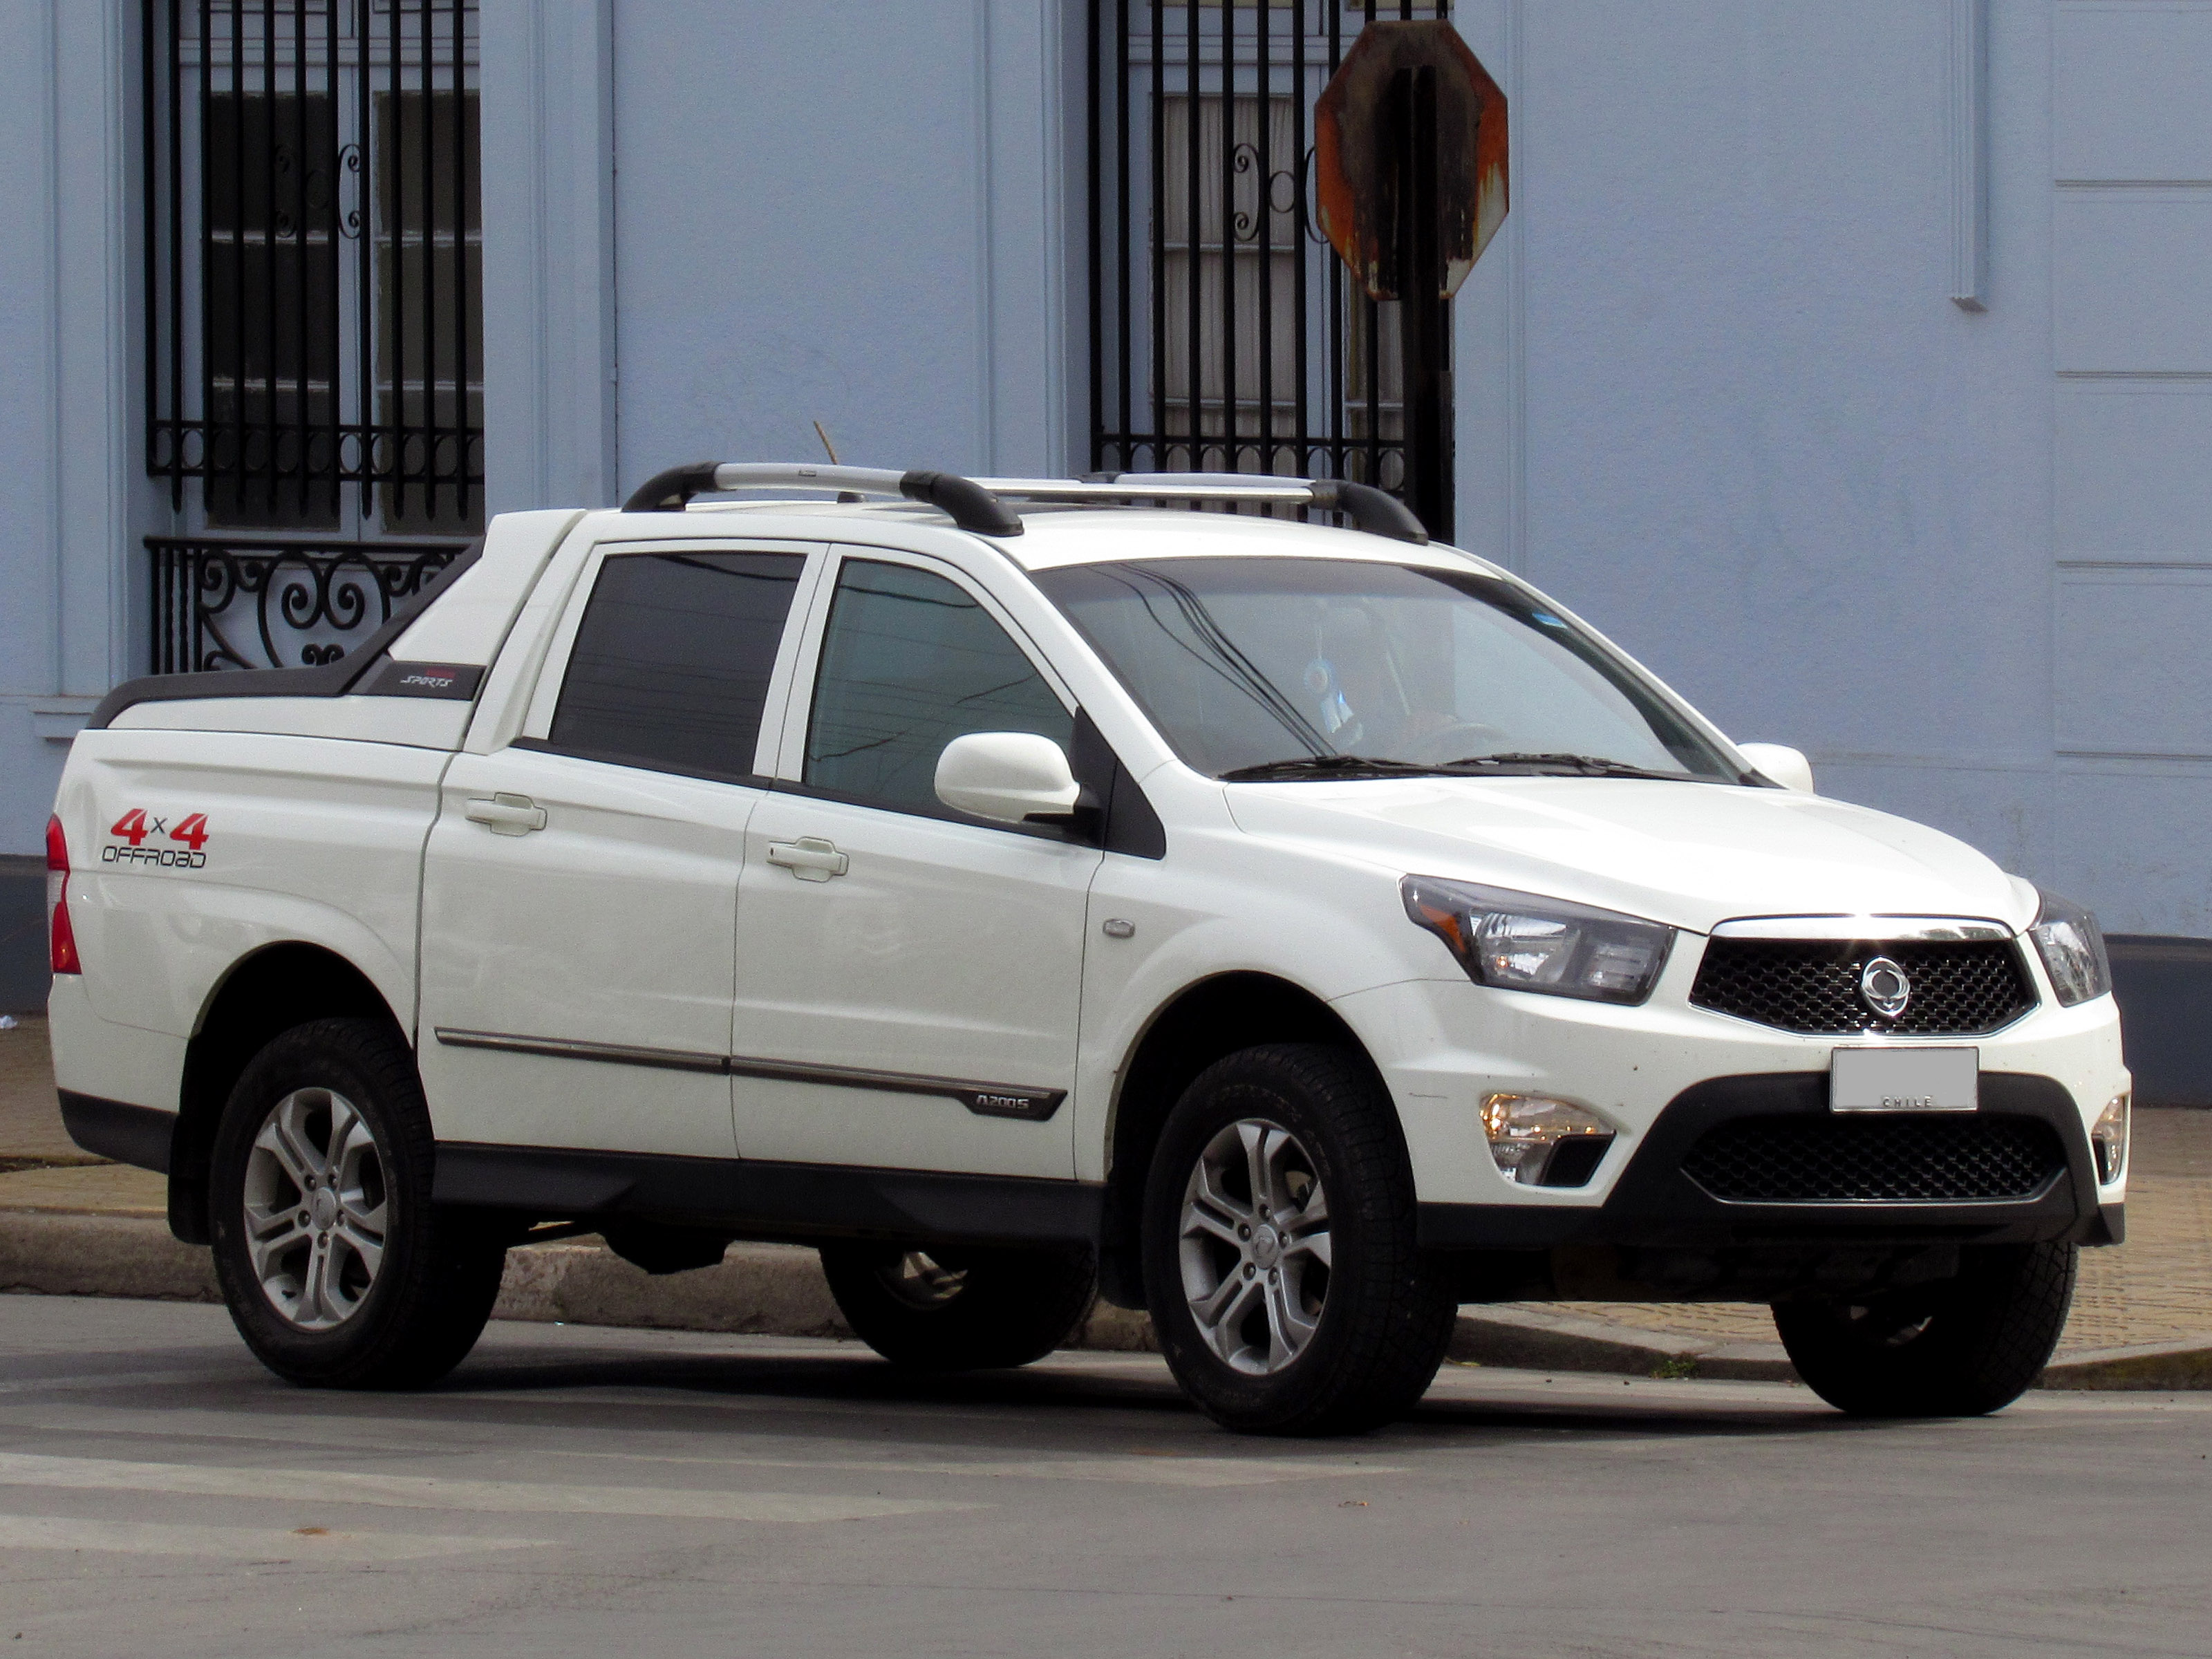 file ssangyong actyon sports a 200 s ax7 4wd 2014 14335886539 jpg wikimedia commons. Black Bedroom Furniture Sets. Home Design Ideas